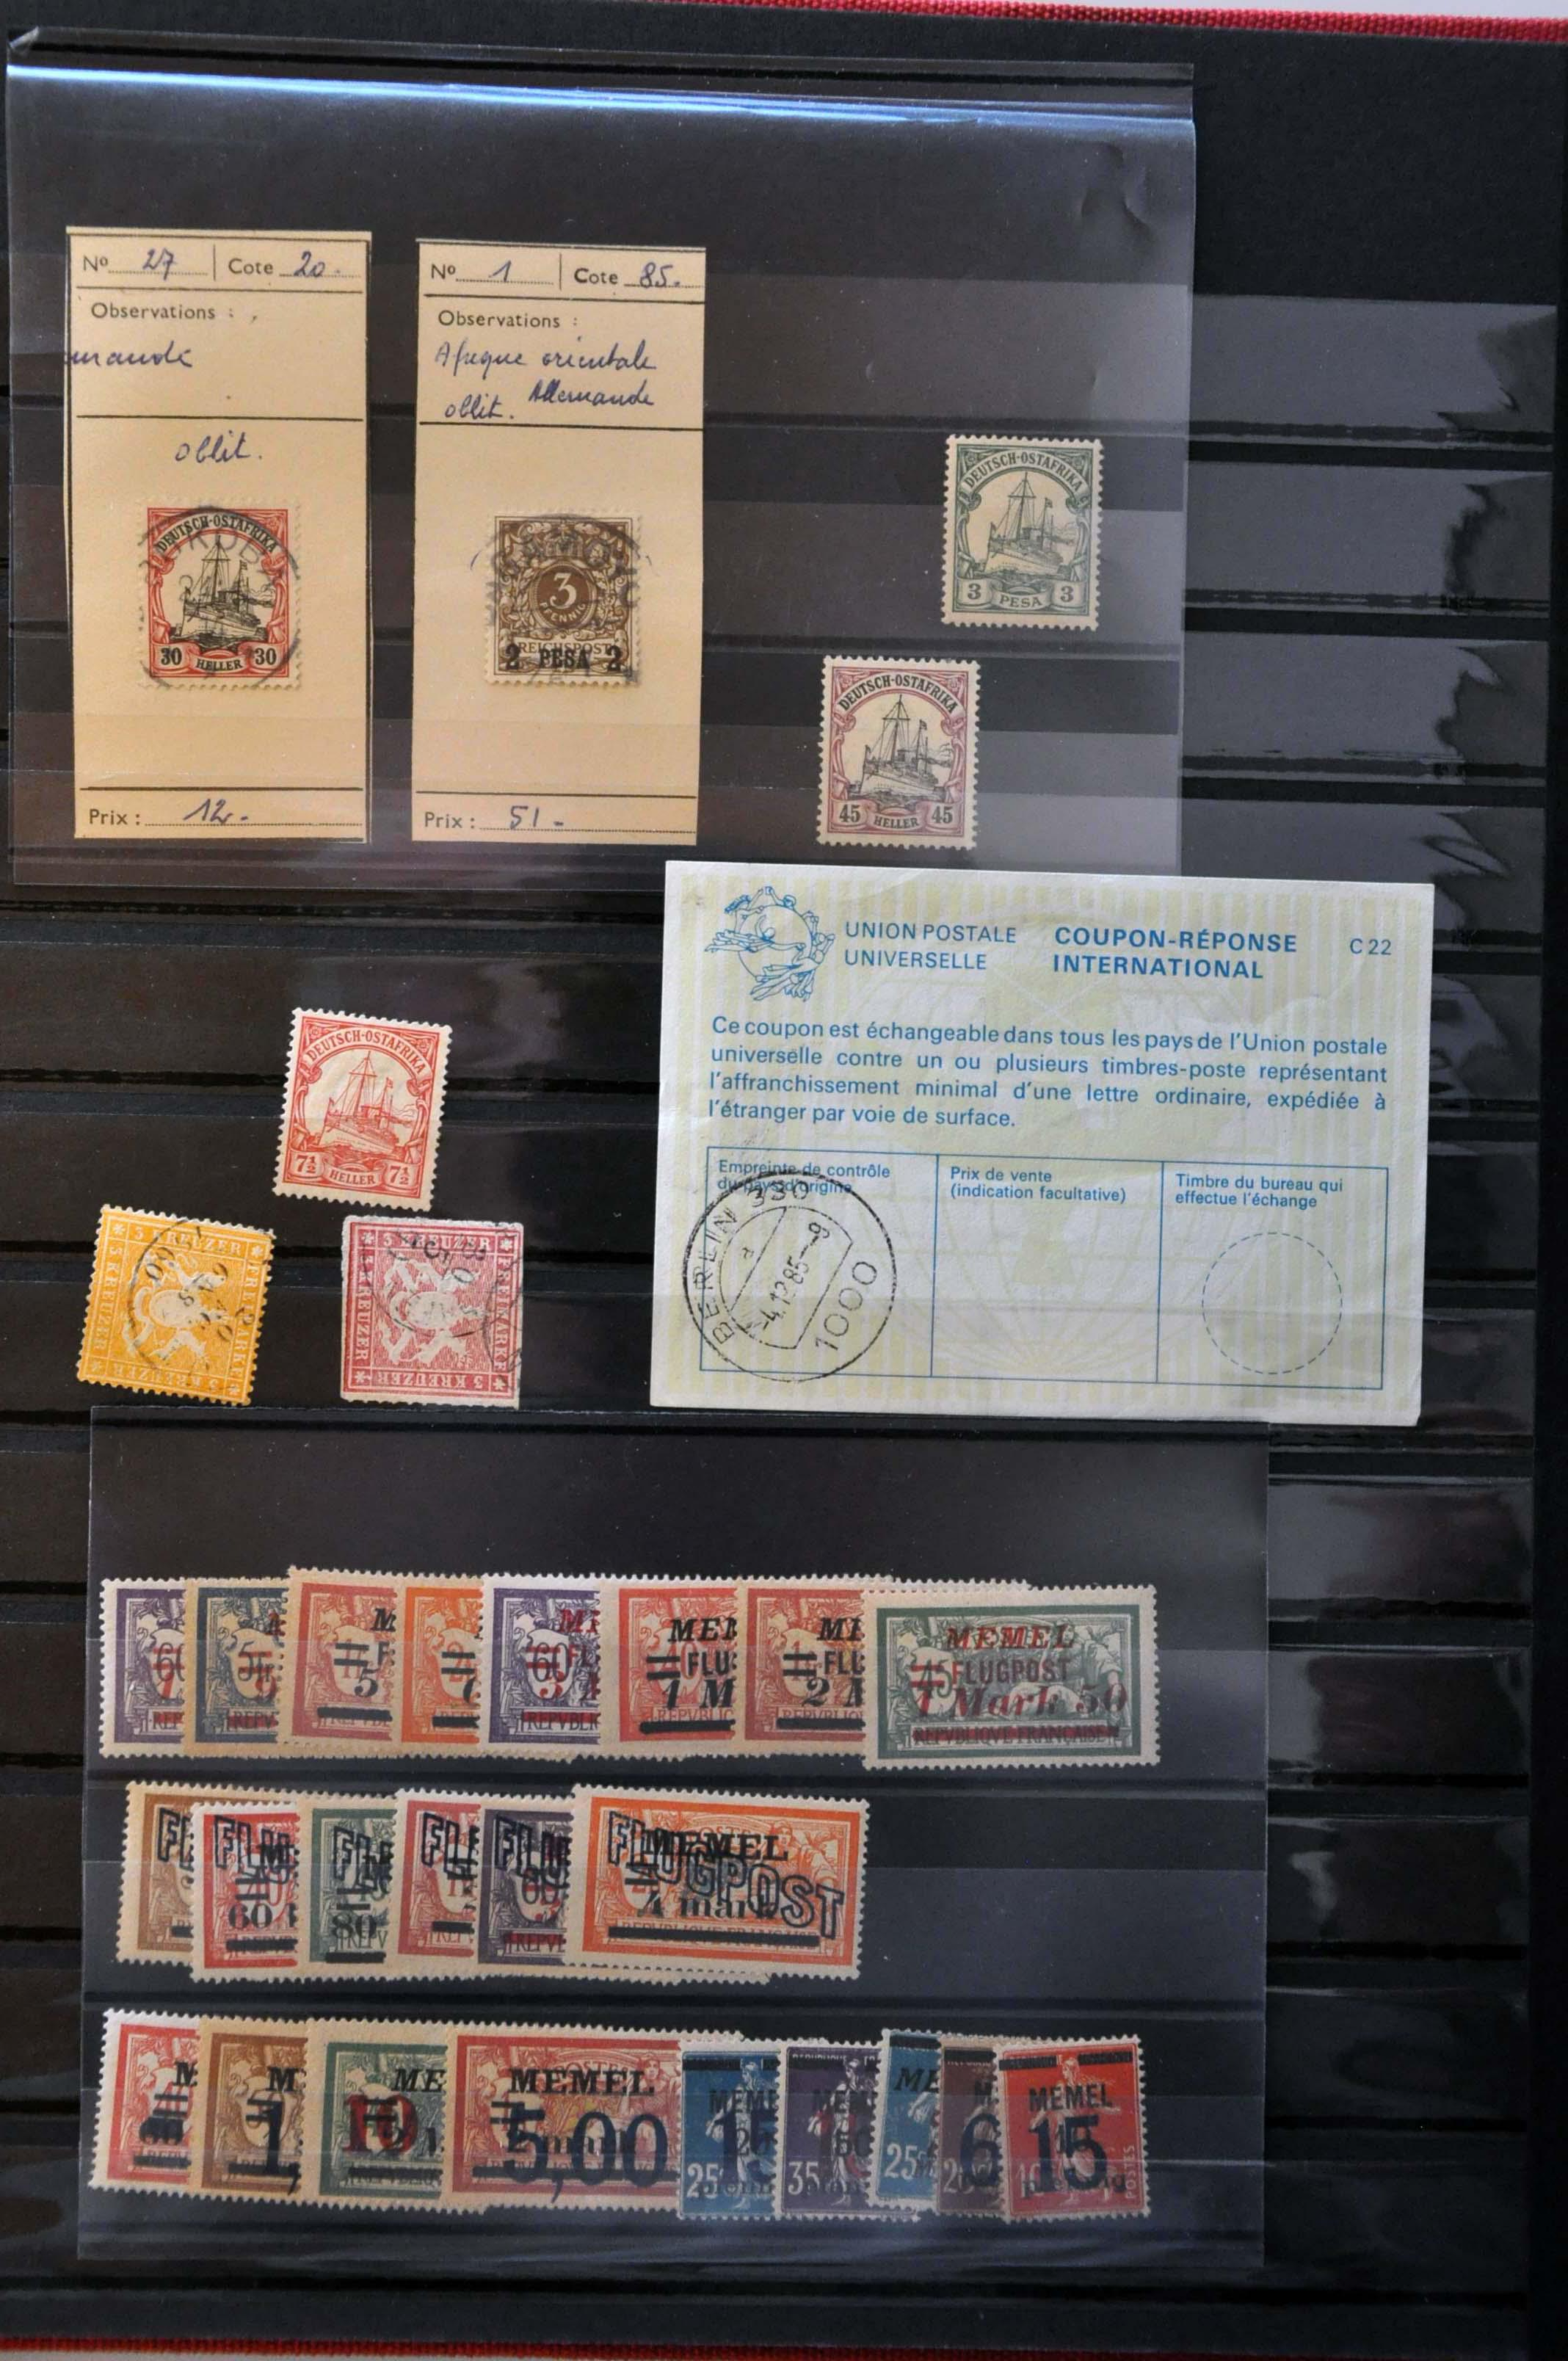 Lot 591 - Germany and former colonies german states -  Corinphila Veilingen Auction 244 -Netherlands and former colonies, WW2 Postal History, Bosnia, German and British colonies, Egypt. - Day 1